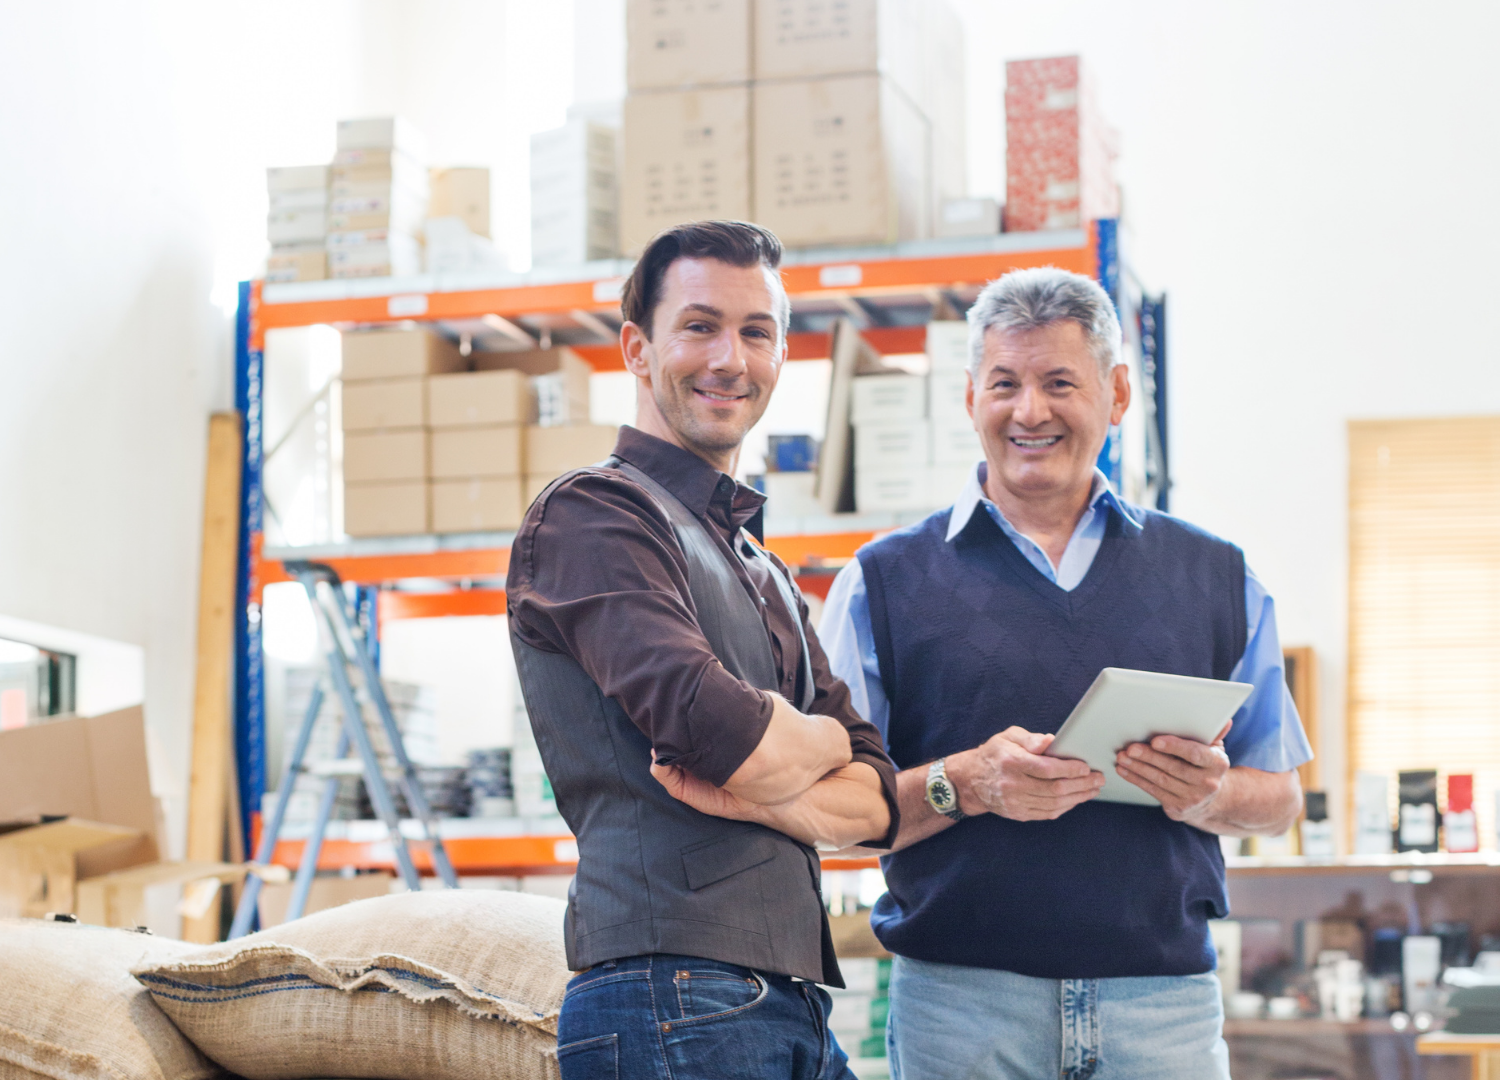 Running A Small Business in Self Storage